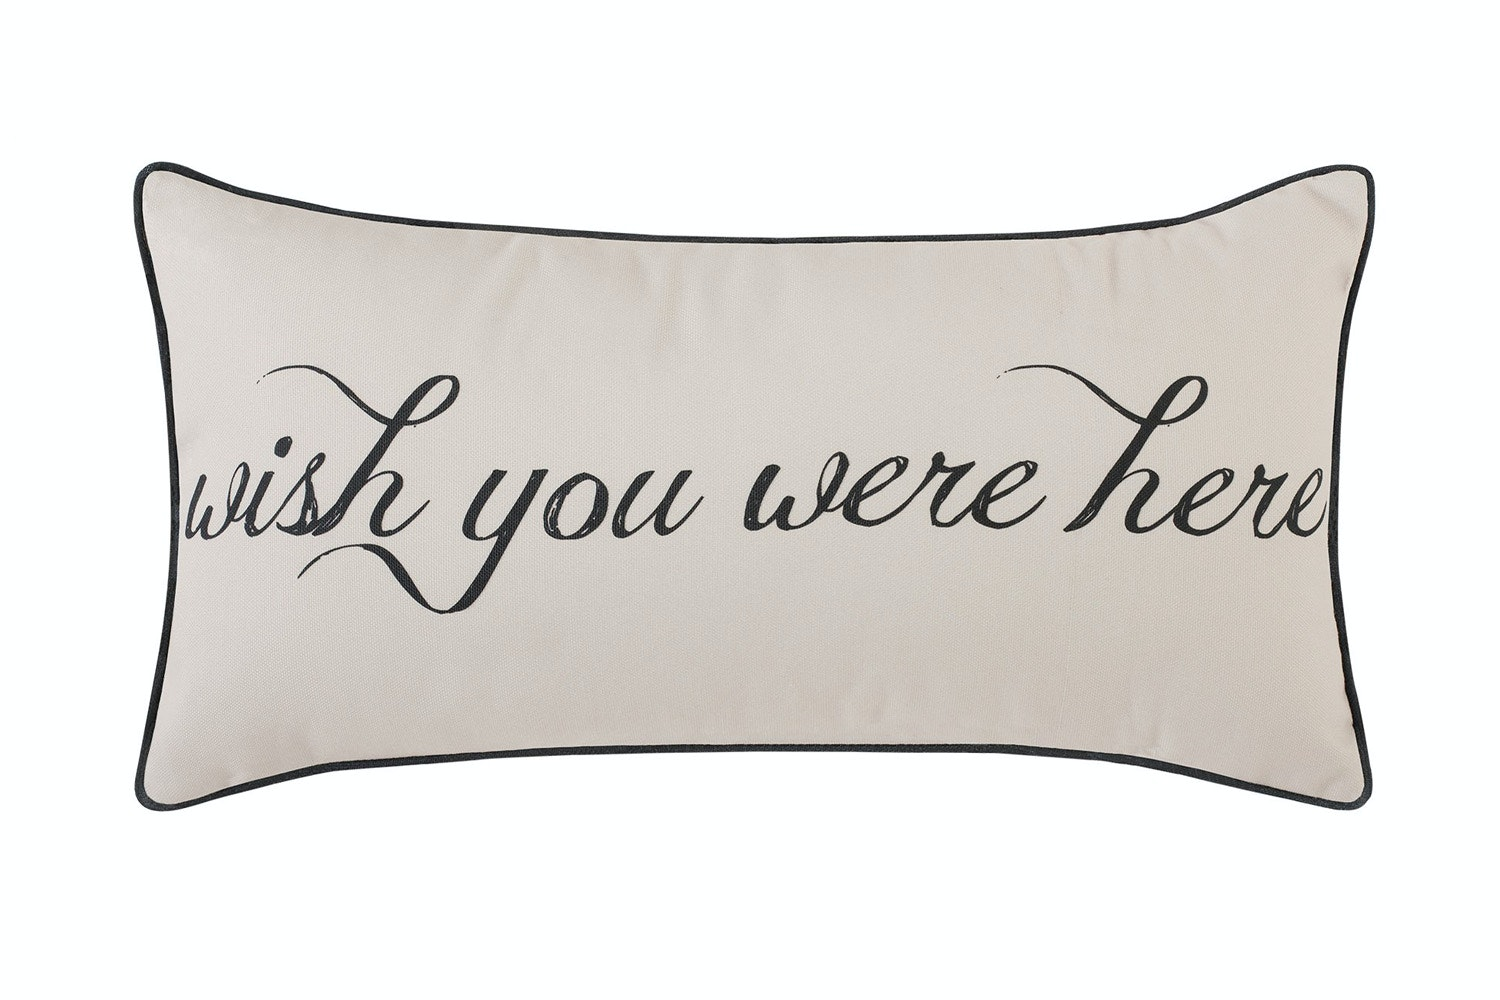 Wish You Were Here Cushion